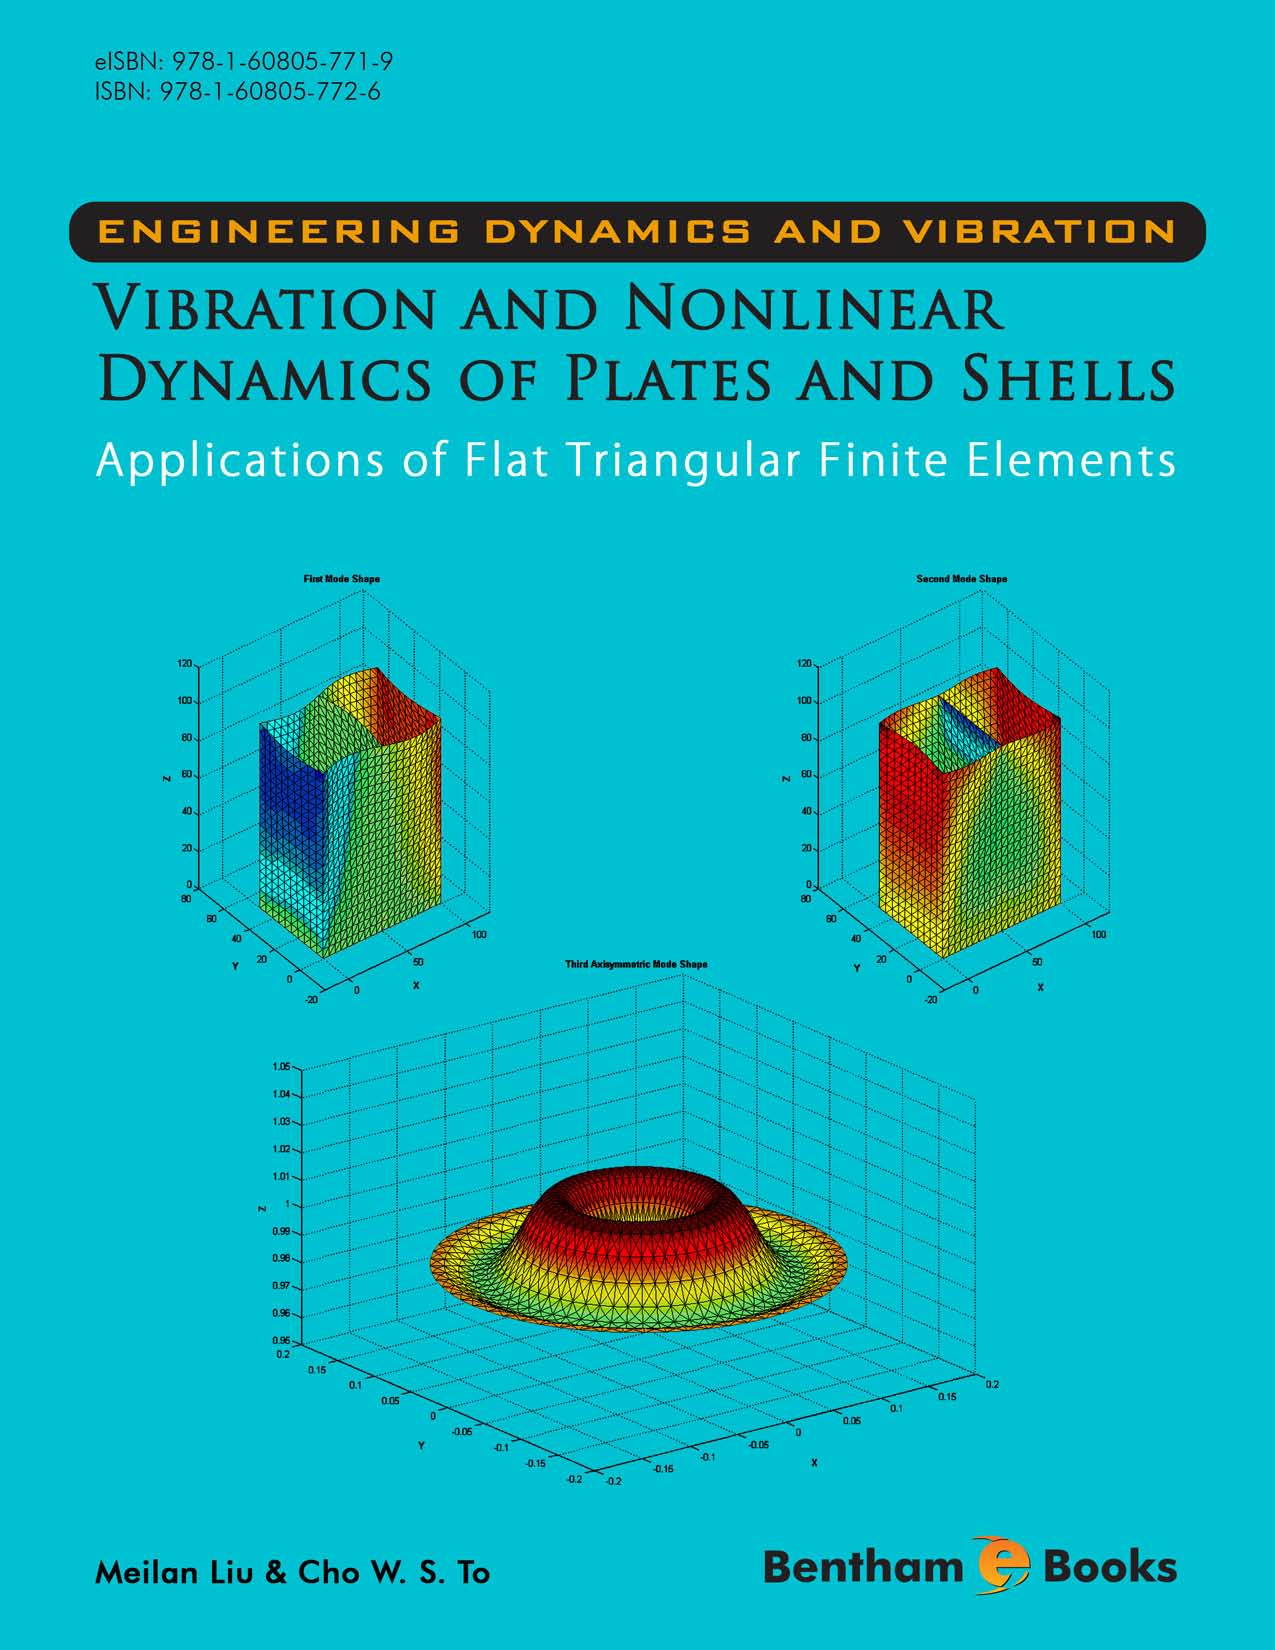 Engineering Dynamics and Vibration: Vibration and Nonlinear Dynamics of Plates and Shells - Applications of Flat Triangular Finite Elements